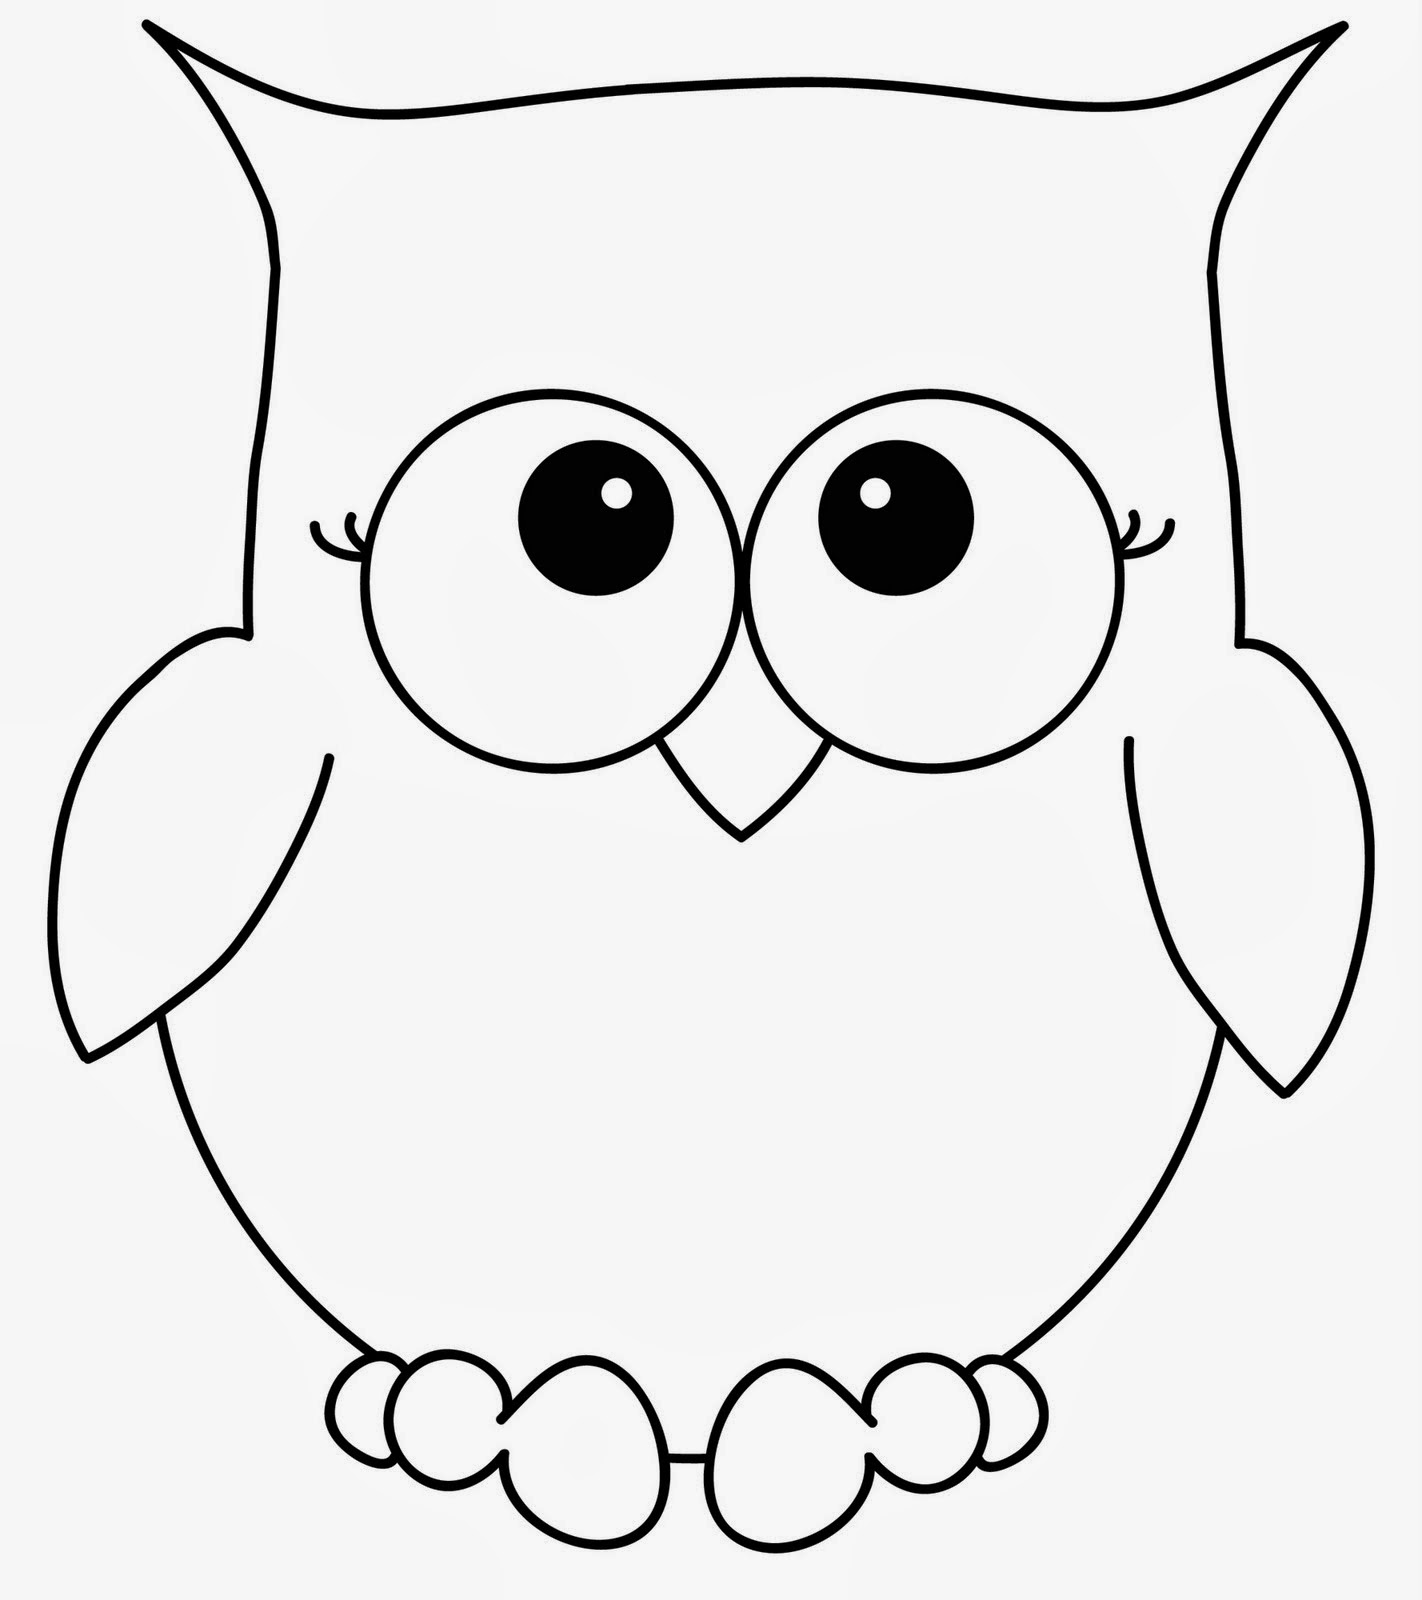 owl coloring page owl coloring pages for adults free detailed owl coloring page owl coloring